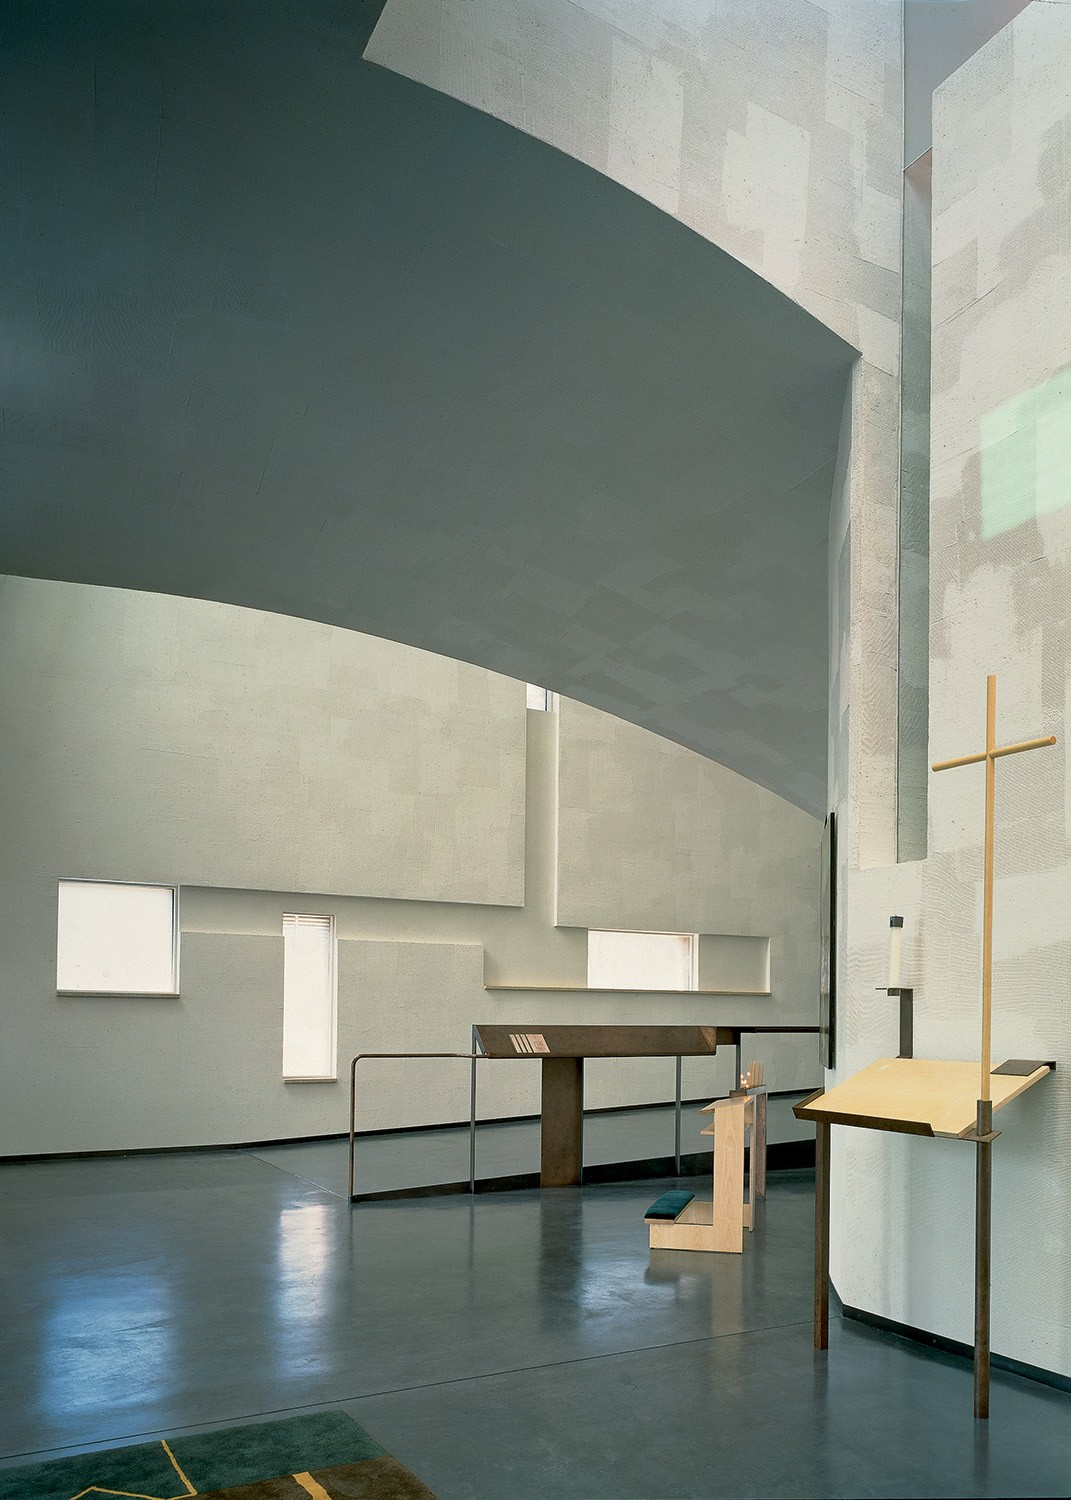 https://s3.us-east-2.amazonaws.com/steven-holl/uploads/projects/project-images/PaulWarchol_Seattle_4-_WV.jpg